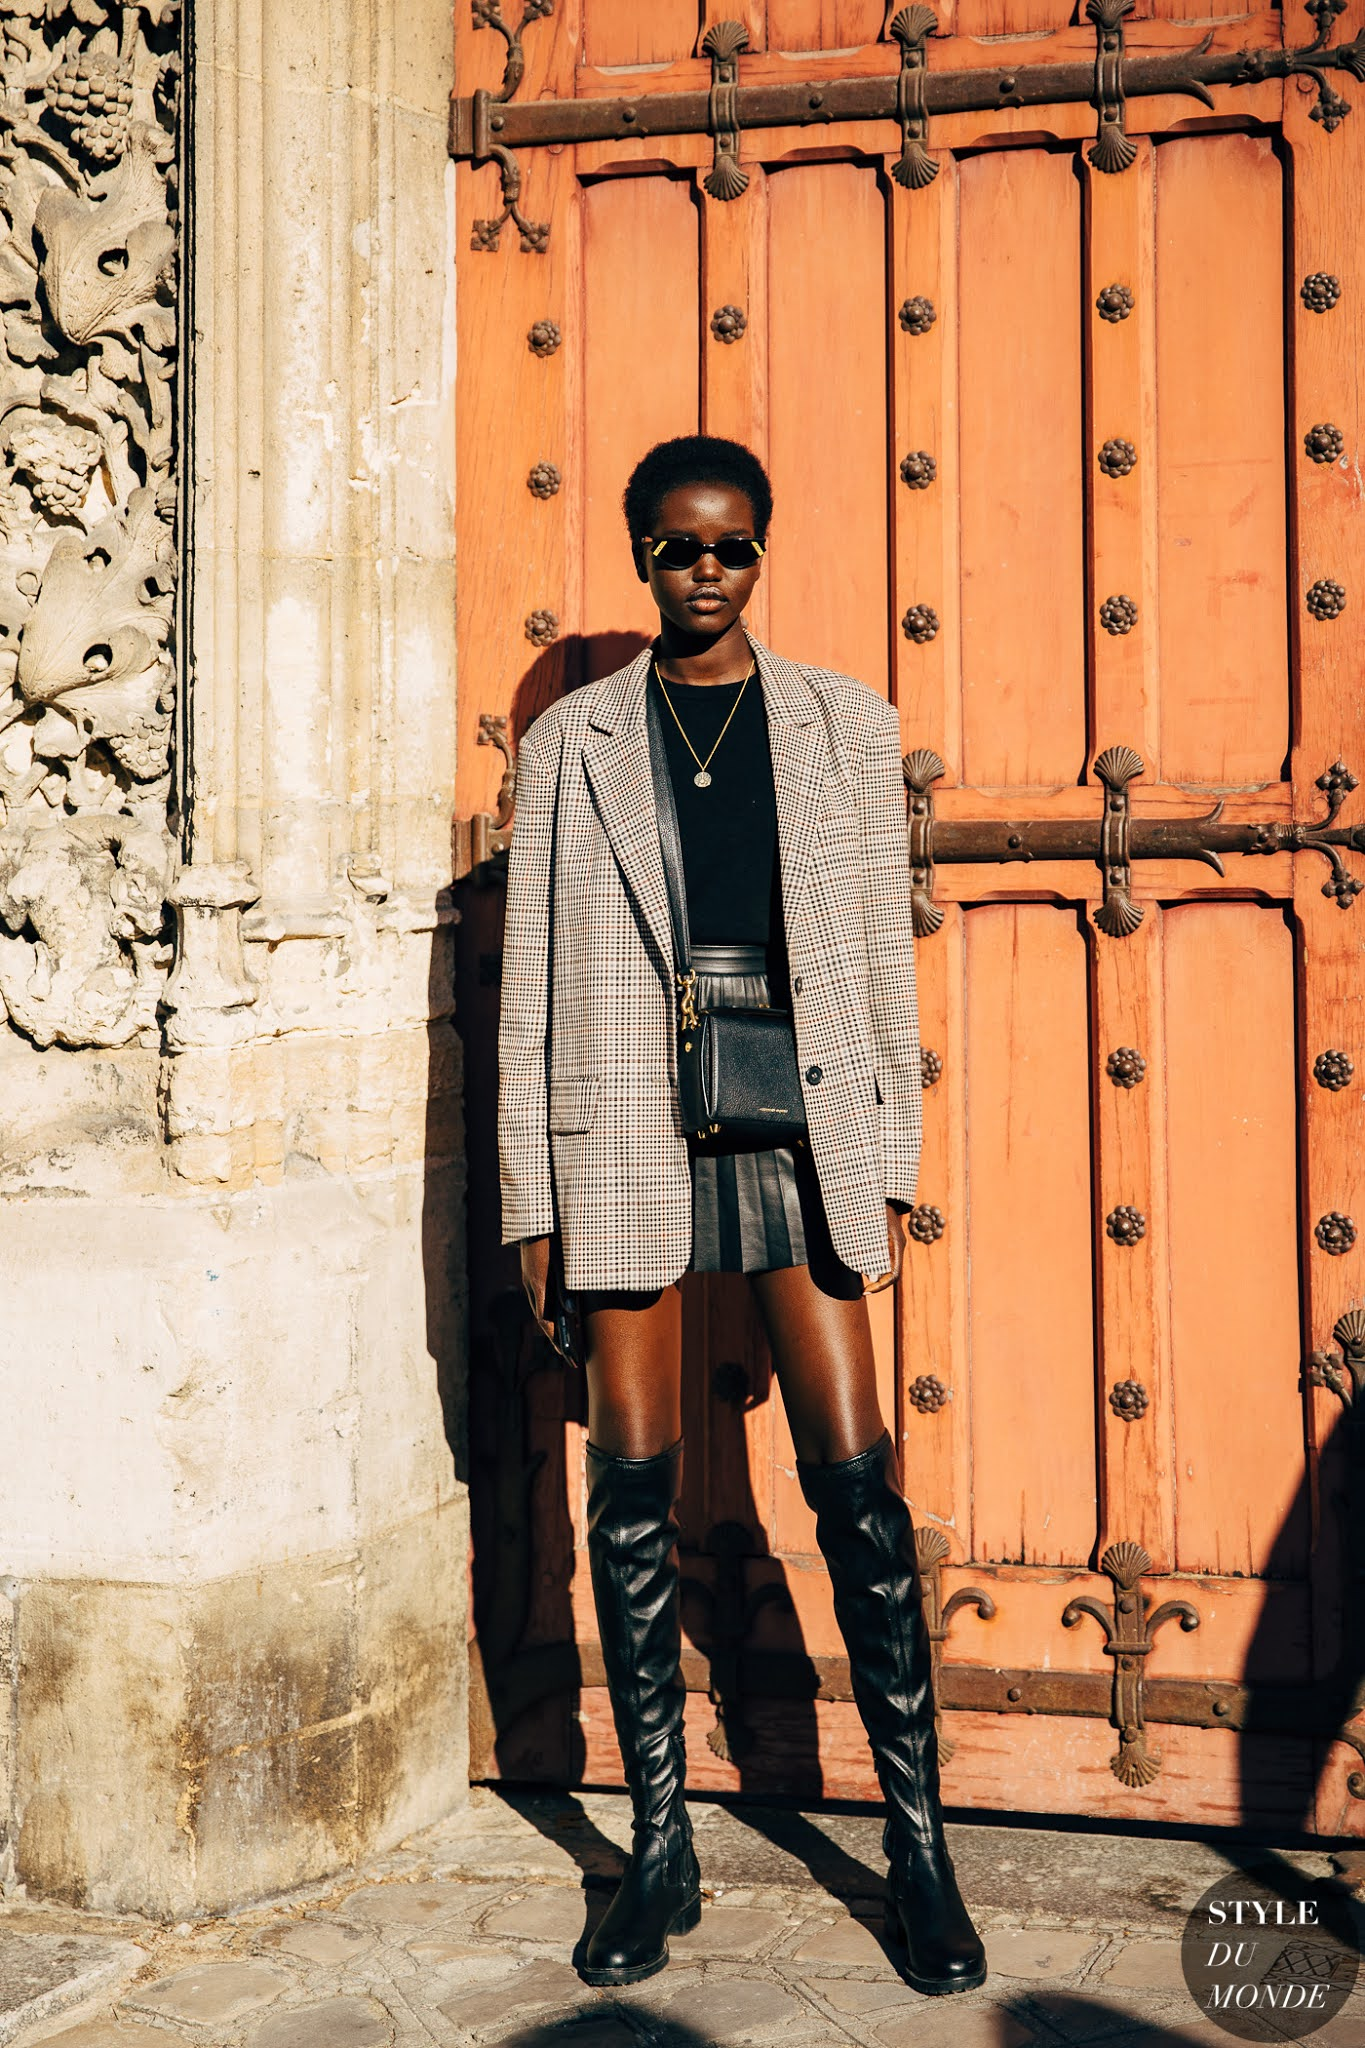 25 Best Over-the-Knee Boots for Fall and Winter — Model Adut Akech Bior street style outfit with plaid blazer and pleated leather skirt